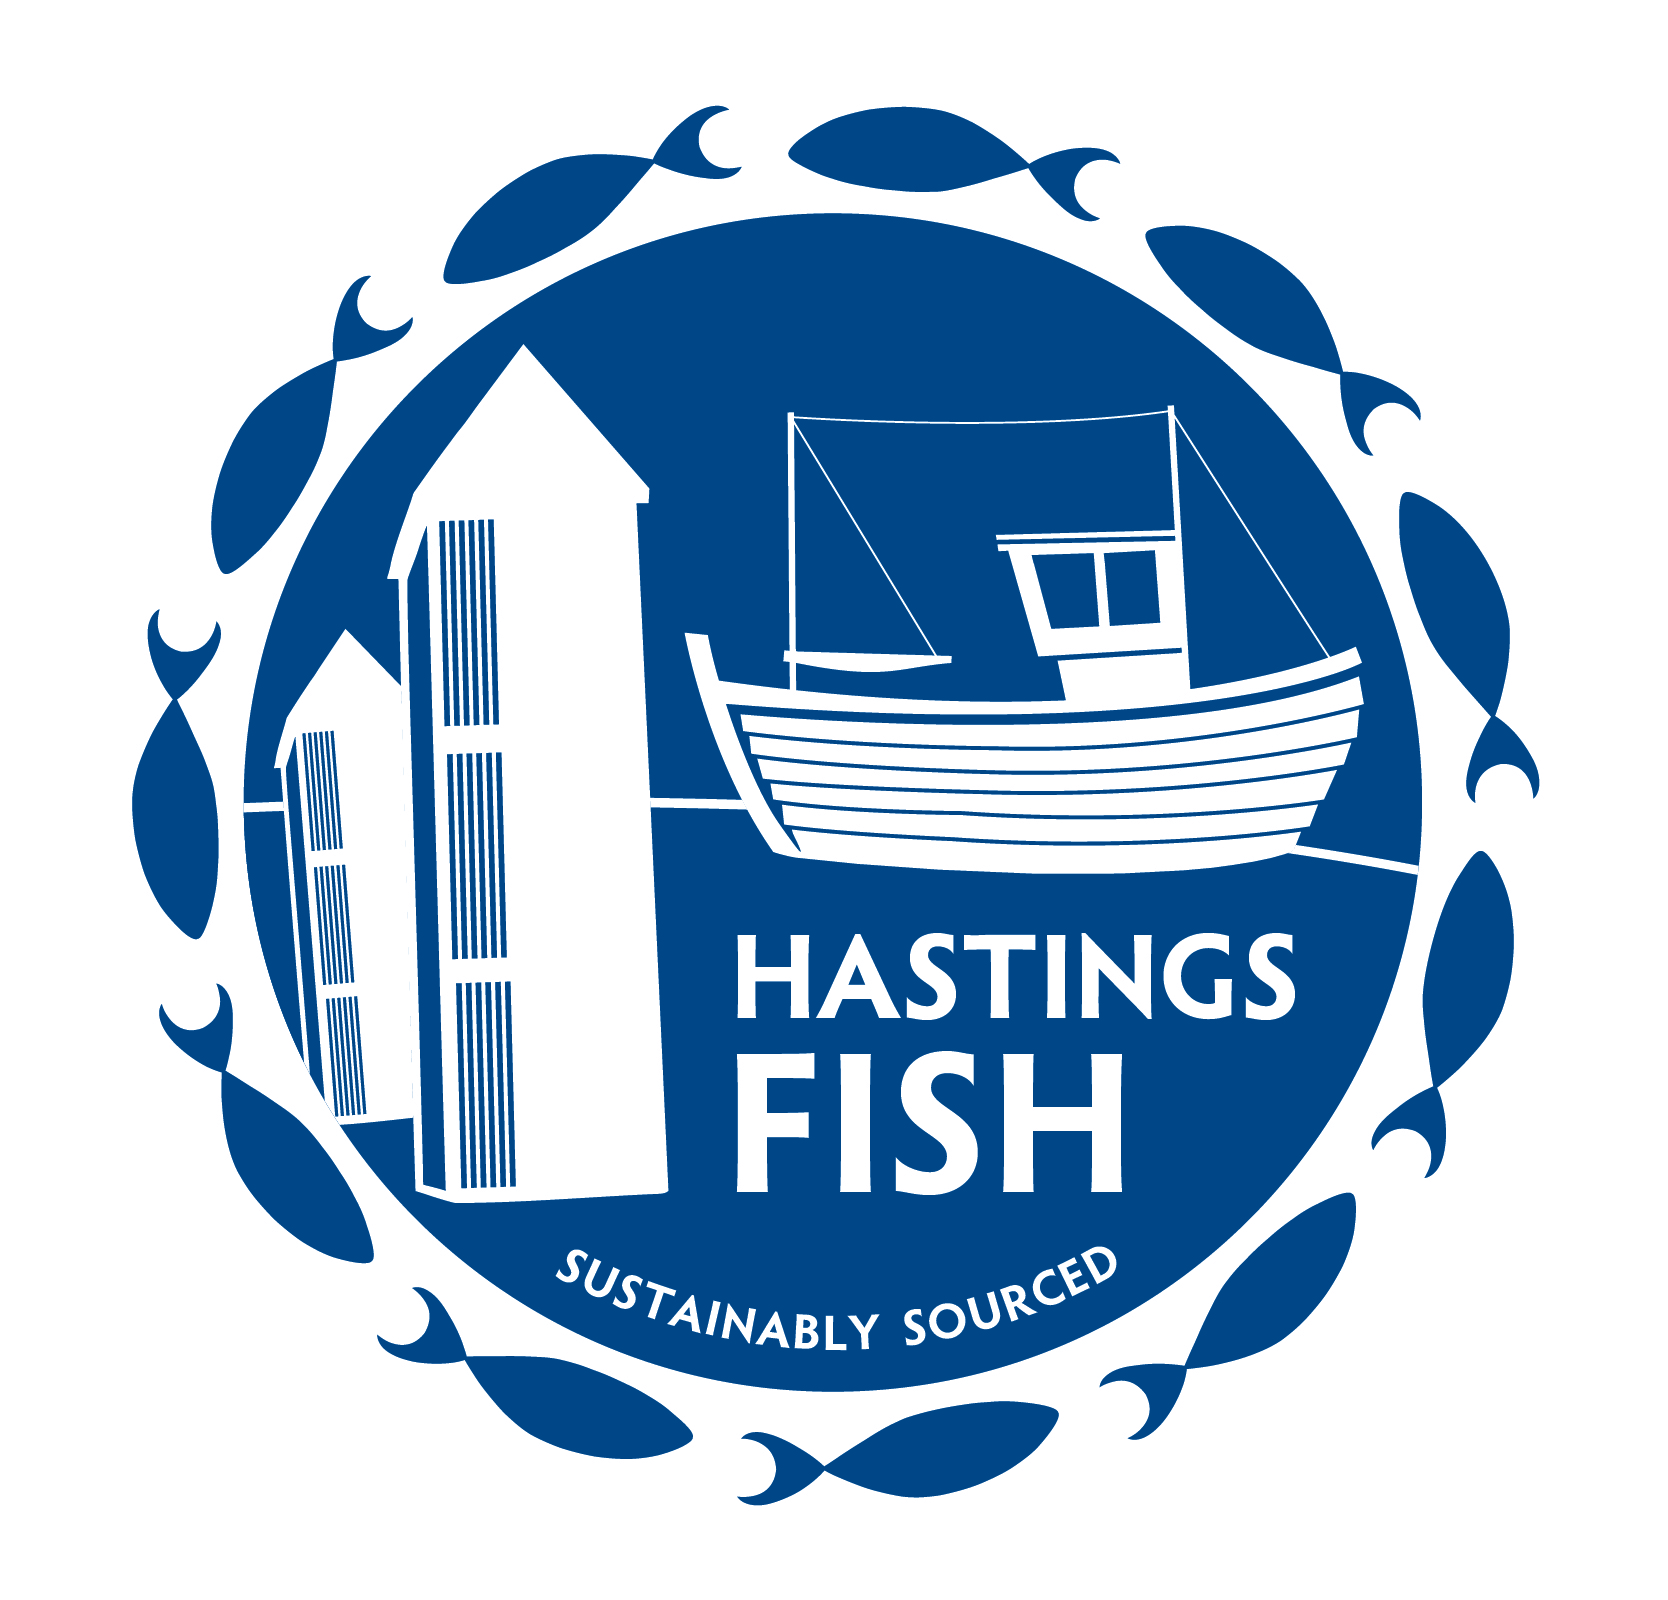 Hastings folk give their backing to 'Hastings Fish'